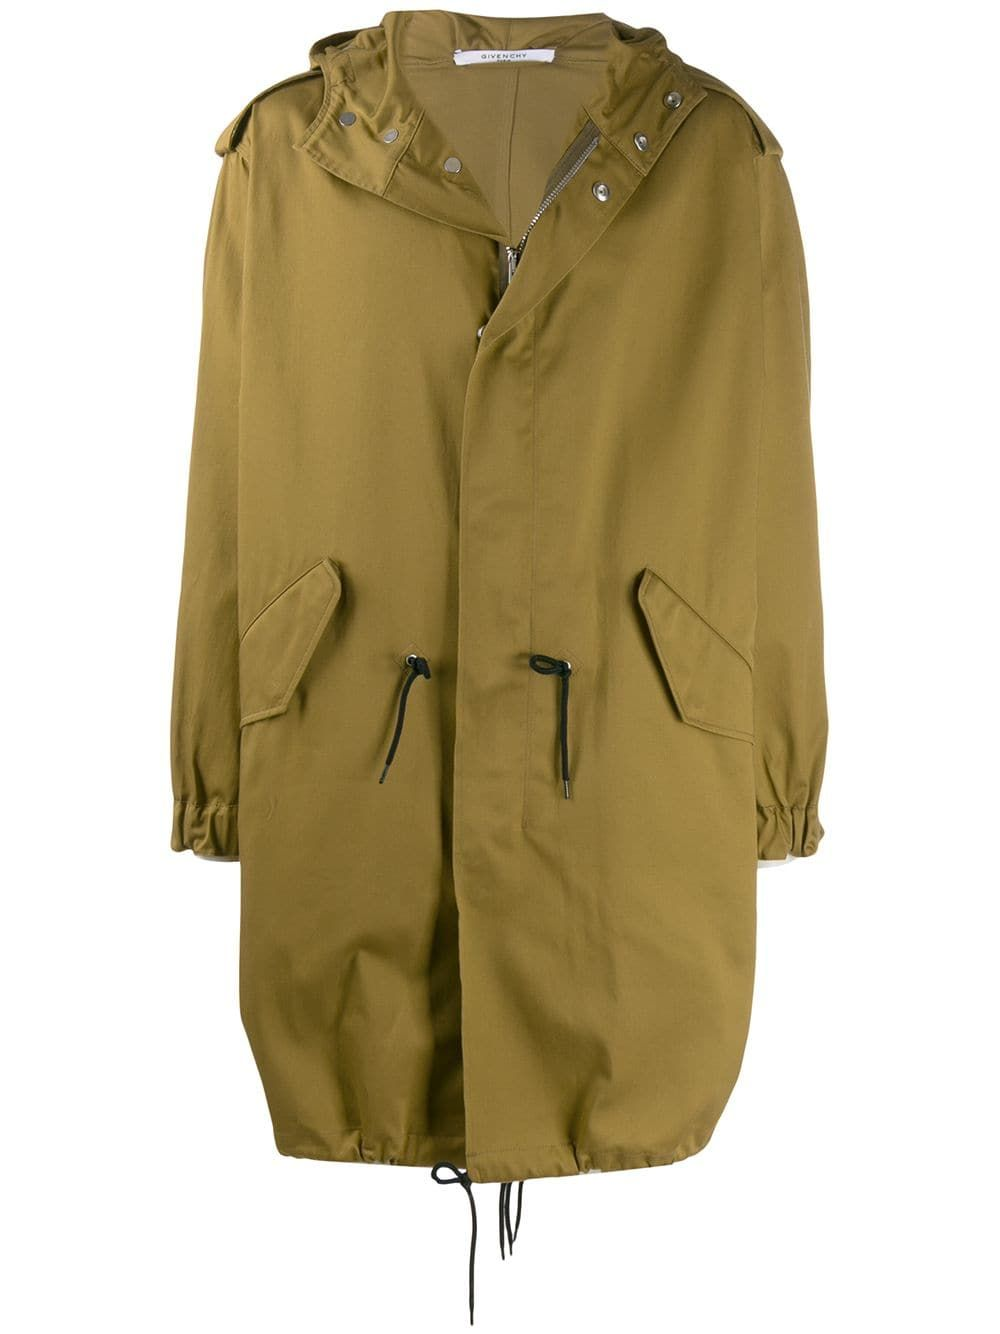 Givenchy Givenchy Address Military Parka Green Givenchy Cloth Military Parka Parka Designer Clothing Brands [ 1334 x 1000 Pixel ]